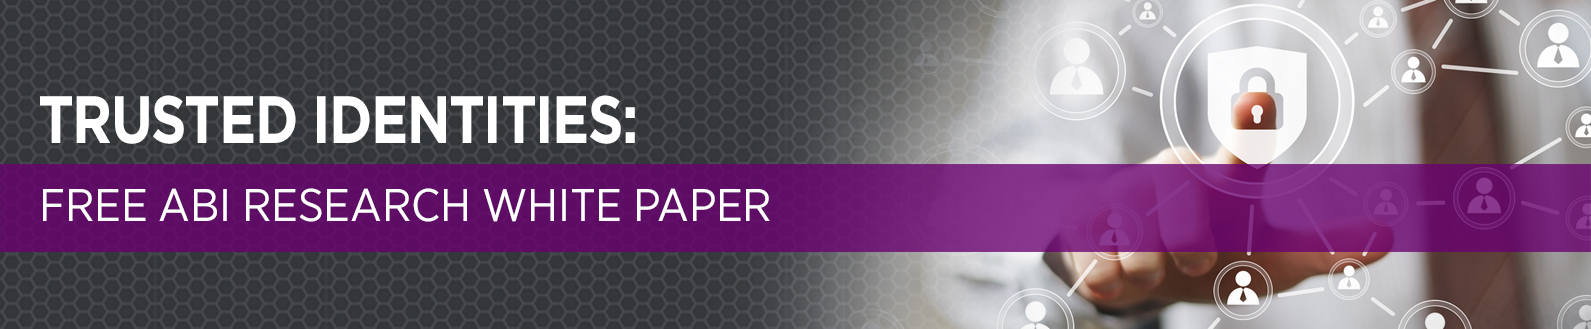 ABI Research white paper banner